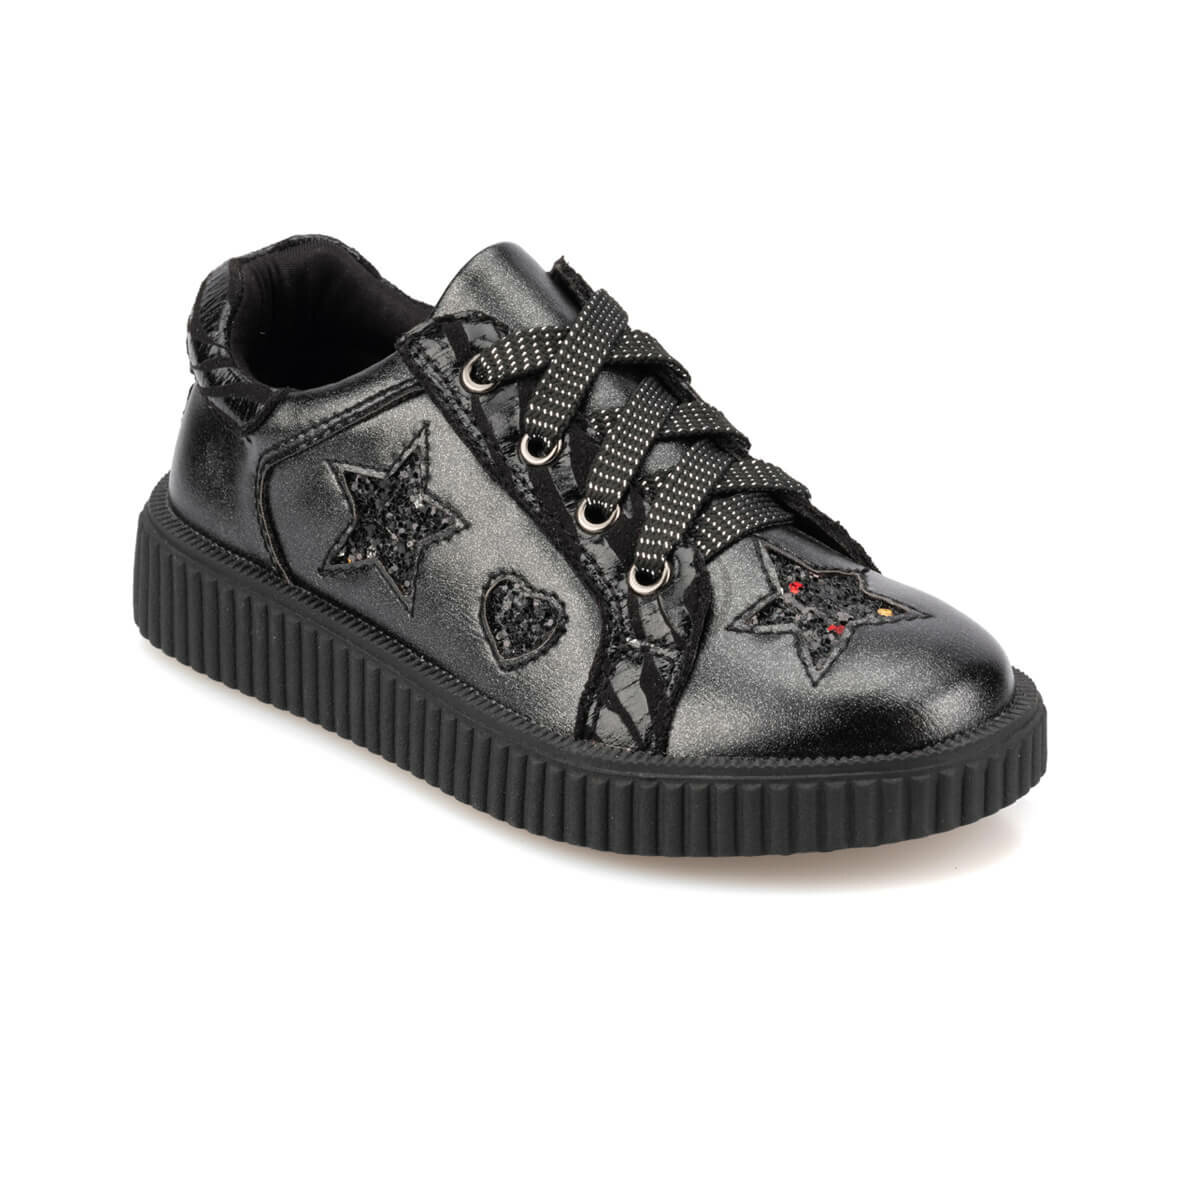 FLO 92. 511785.P Black Female Child Sneaker Shoes Polaris